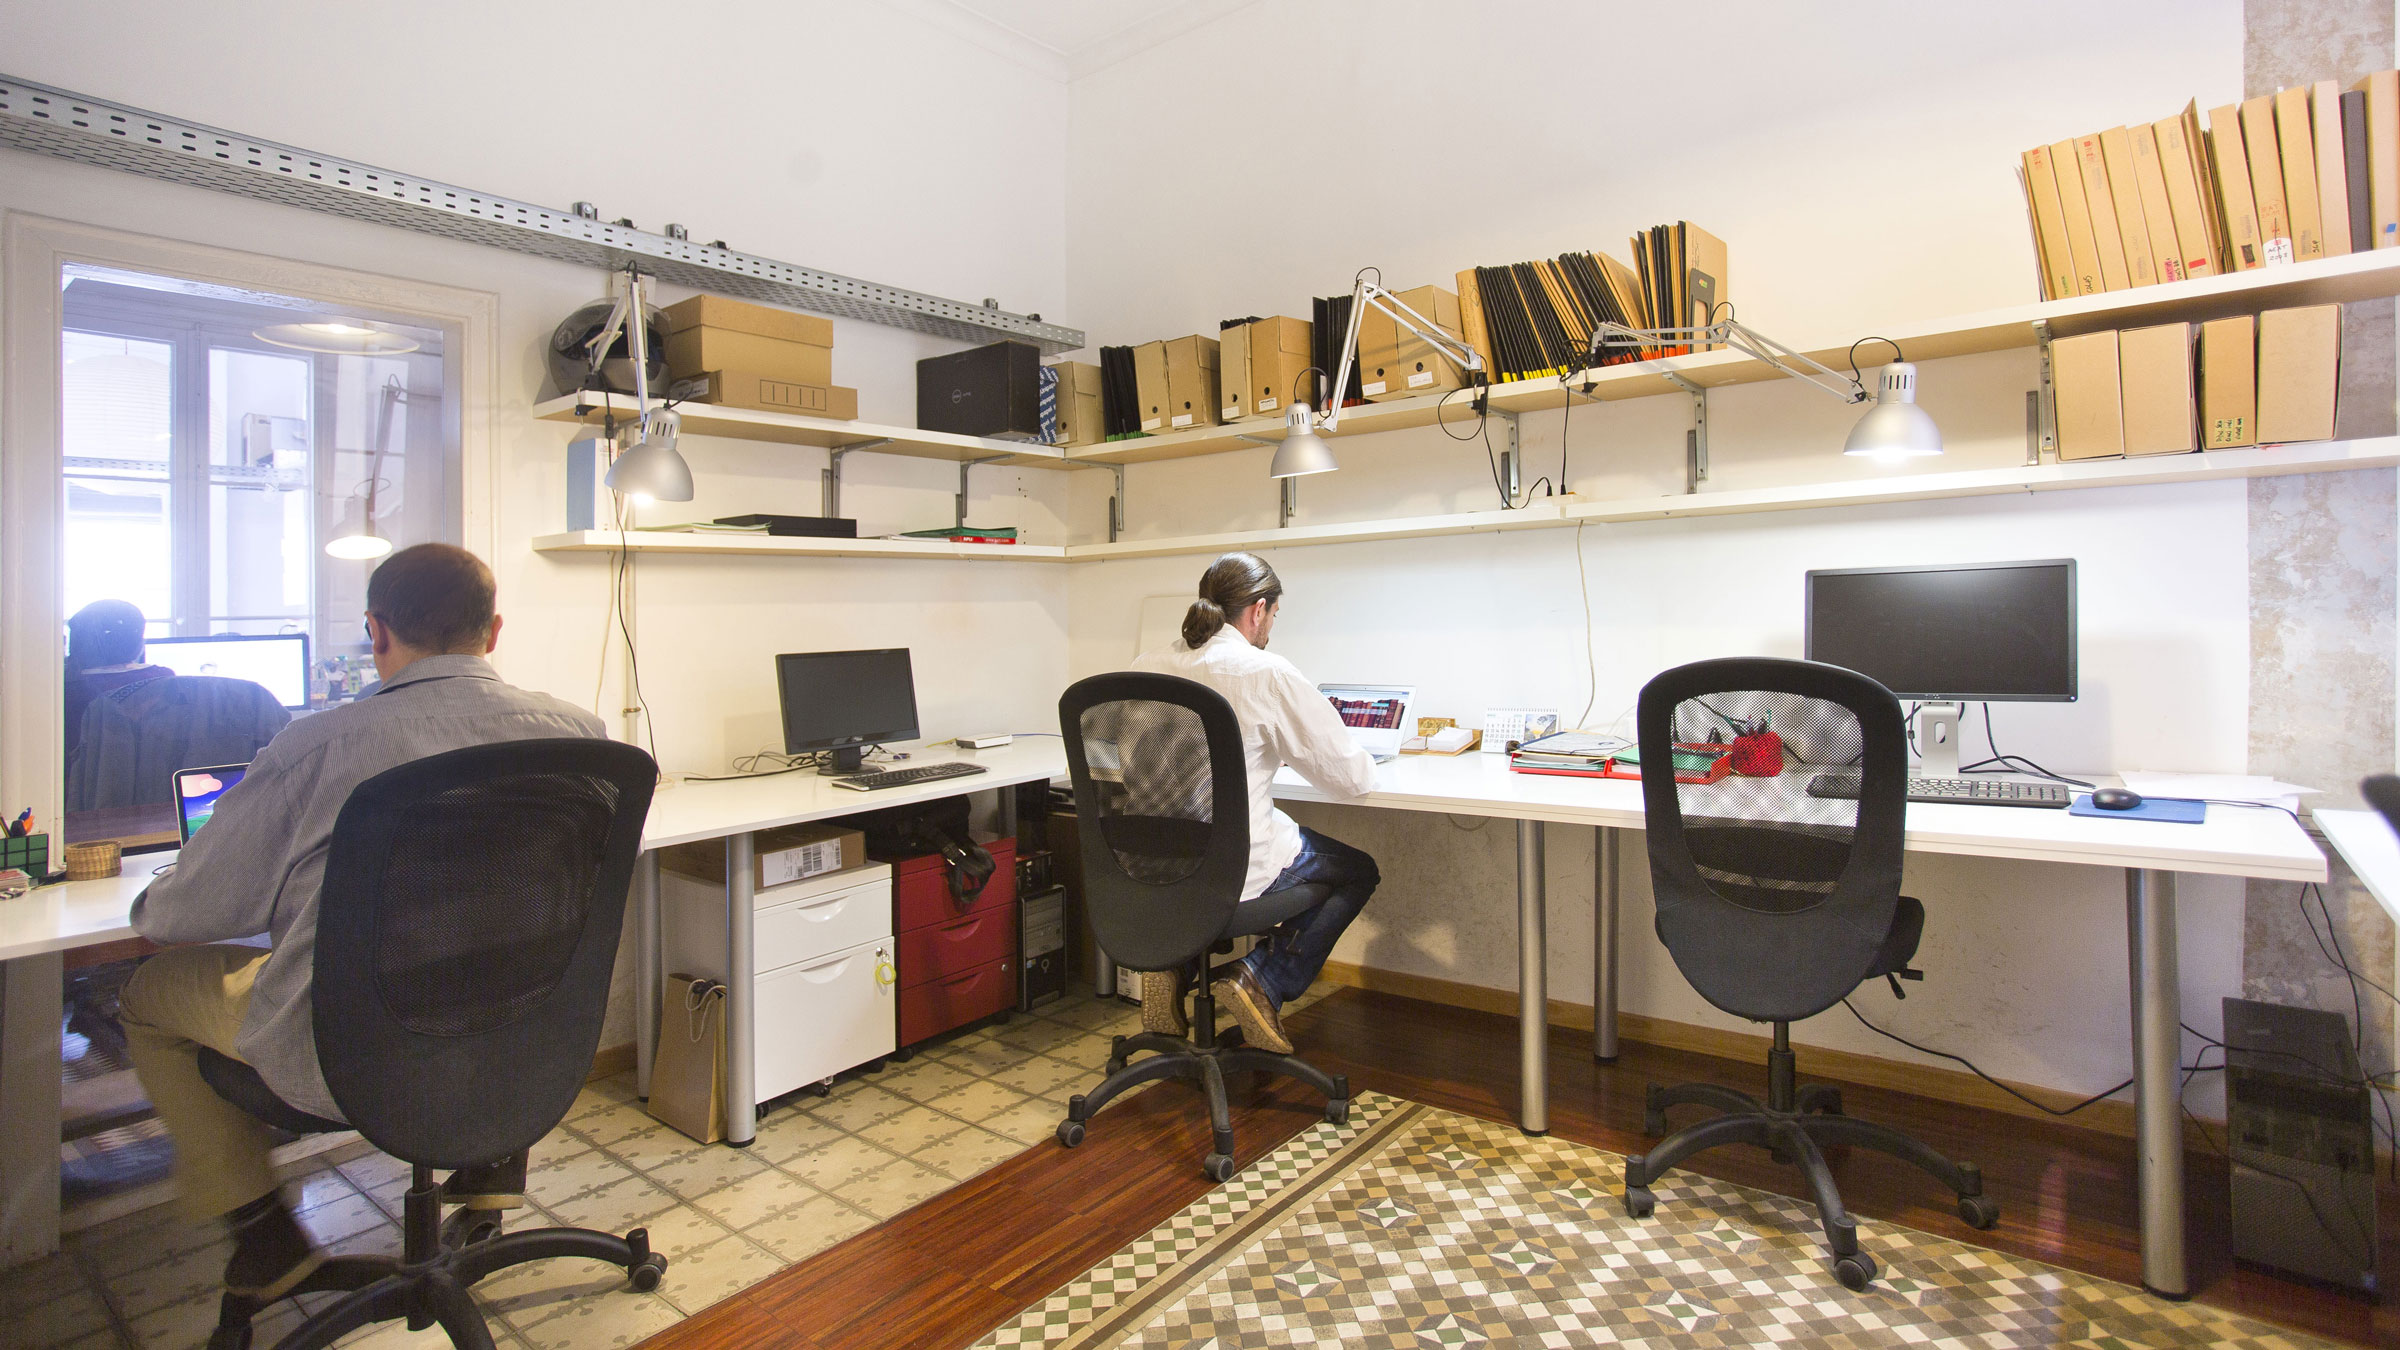 SPACE-3-bcn-575-coworking-1